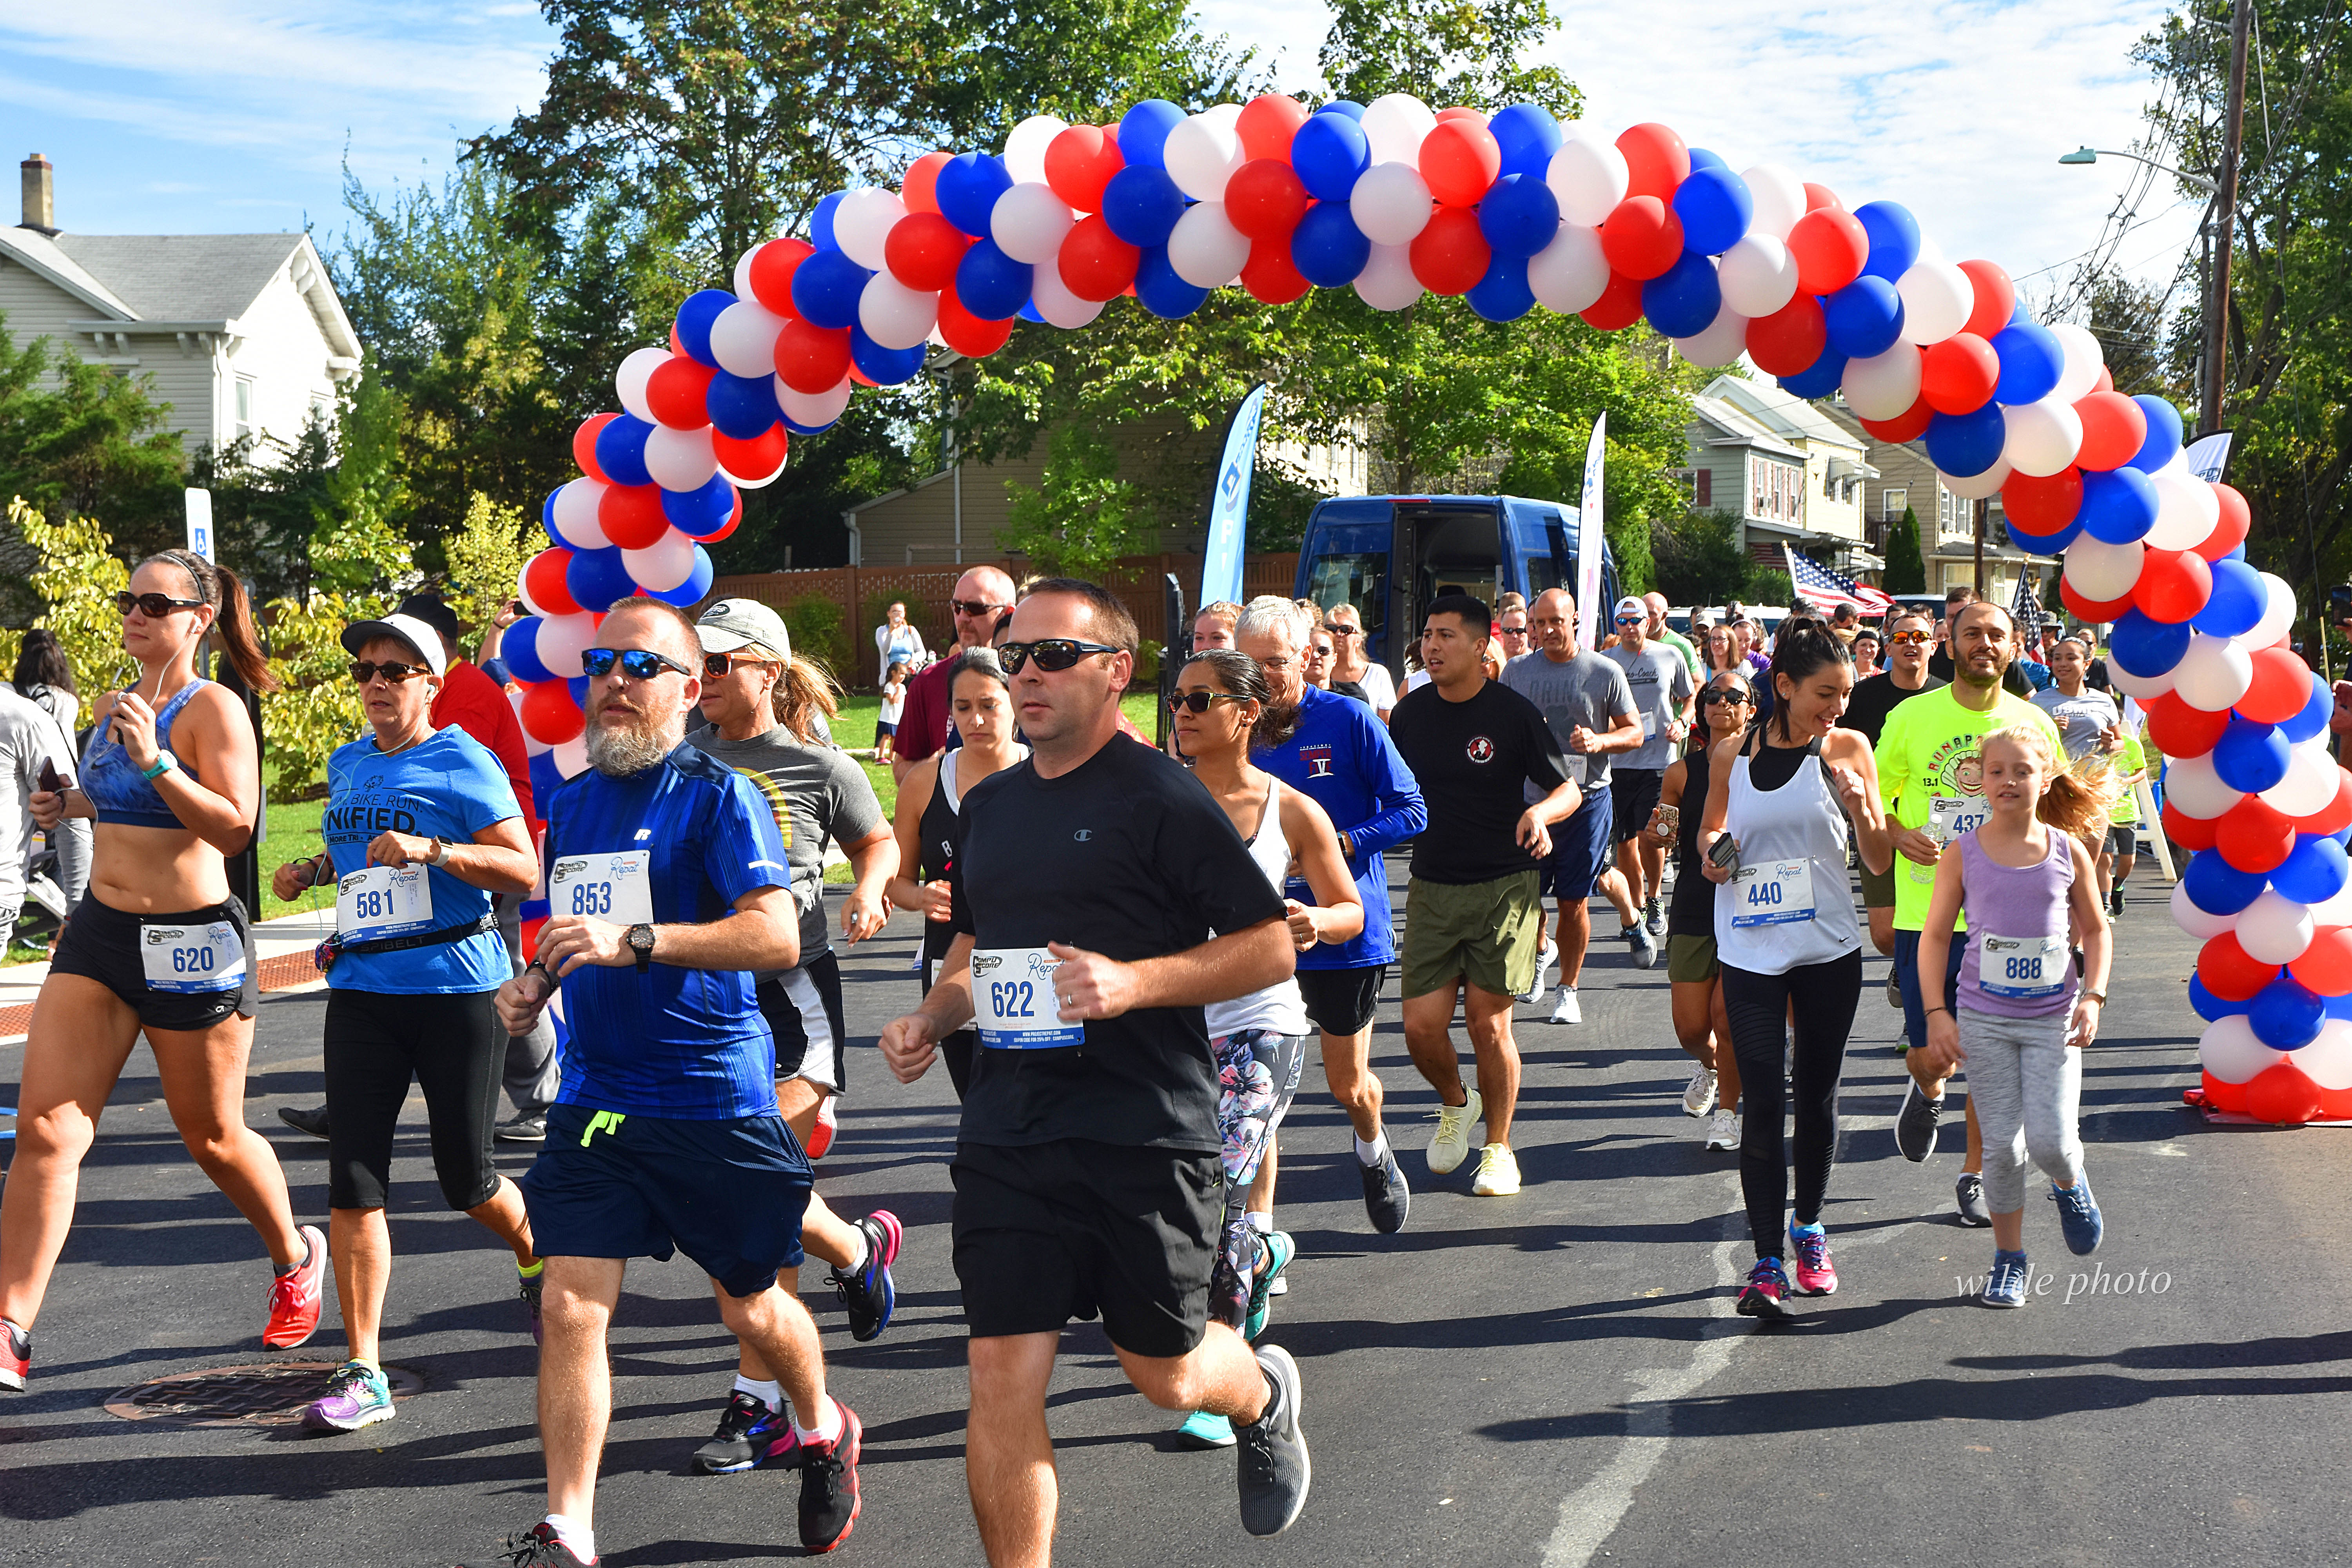 The Manila Madness 5K is a Running race in Raritan, New Jersey consisting of a 5K.